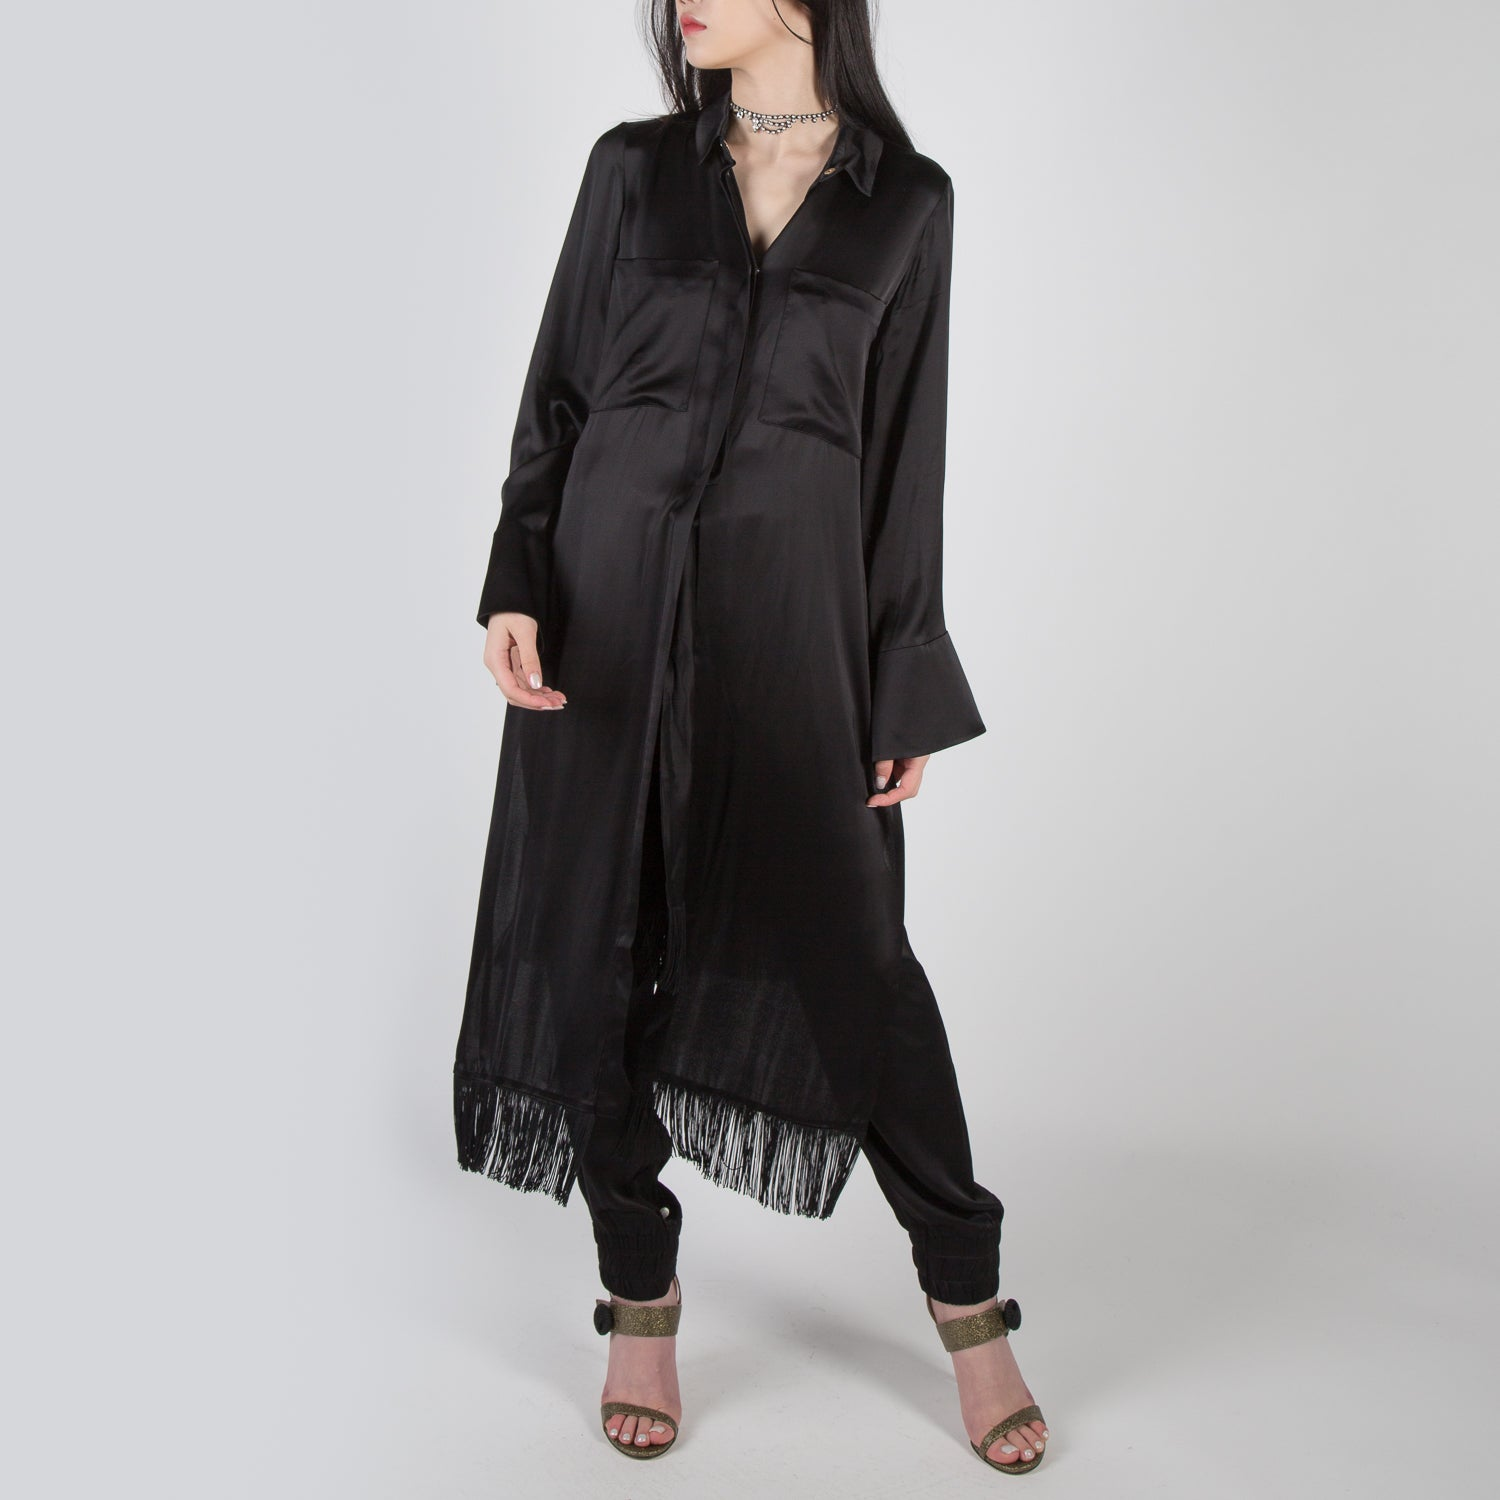 Long fringe shirt with waist tie by Mother of Pearl at Secret Location